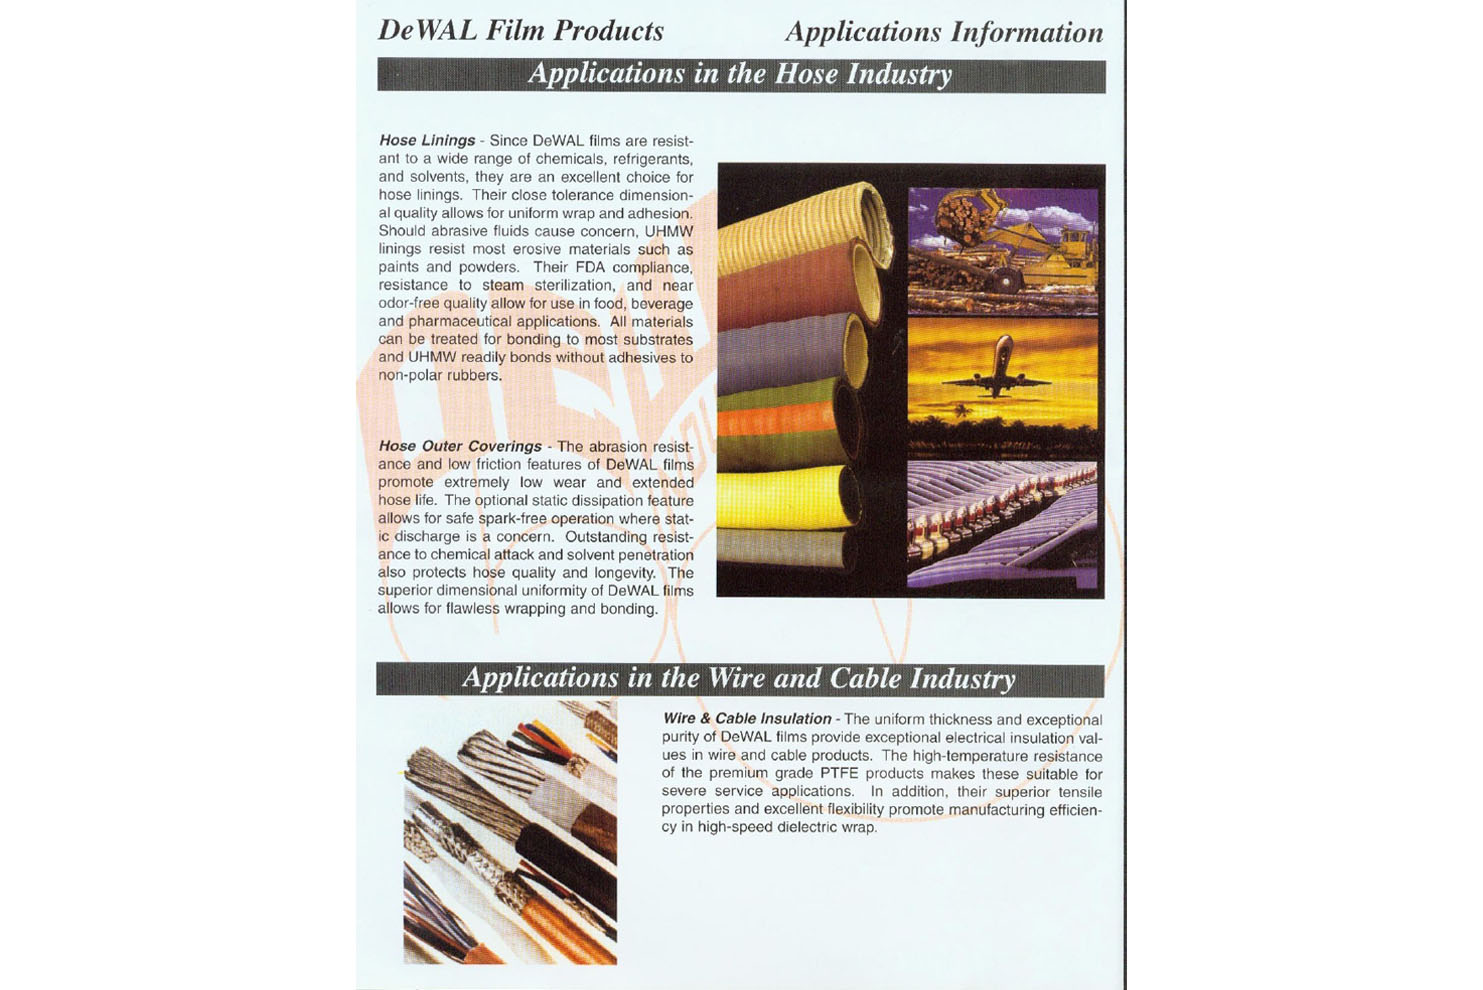 PTFE And UHMW Films